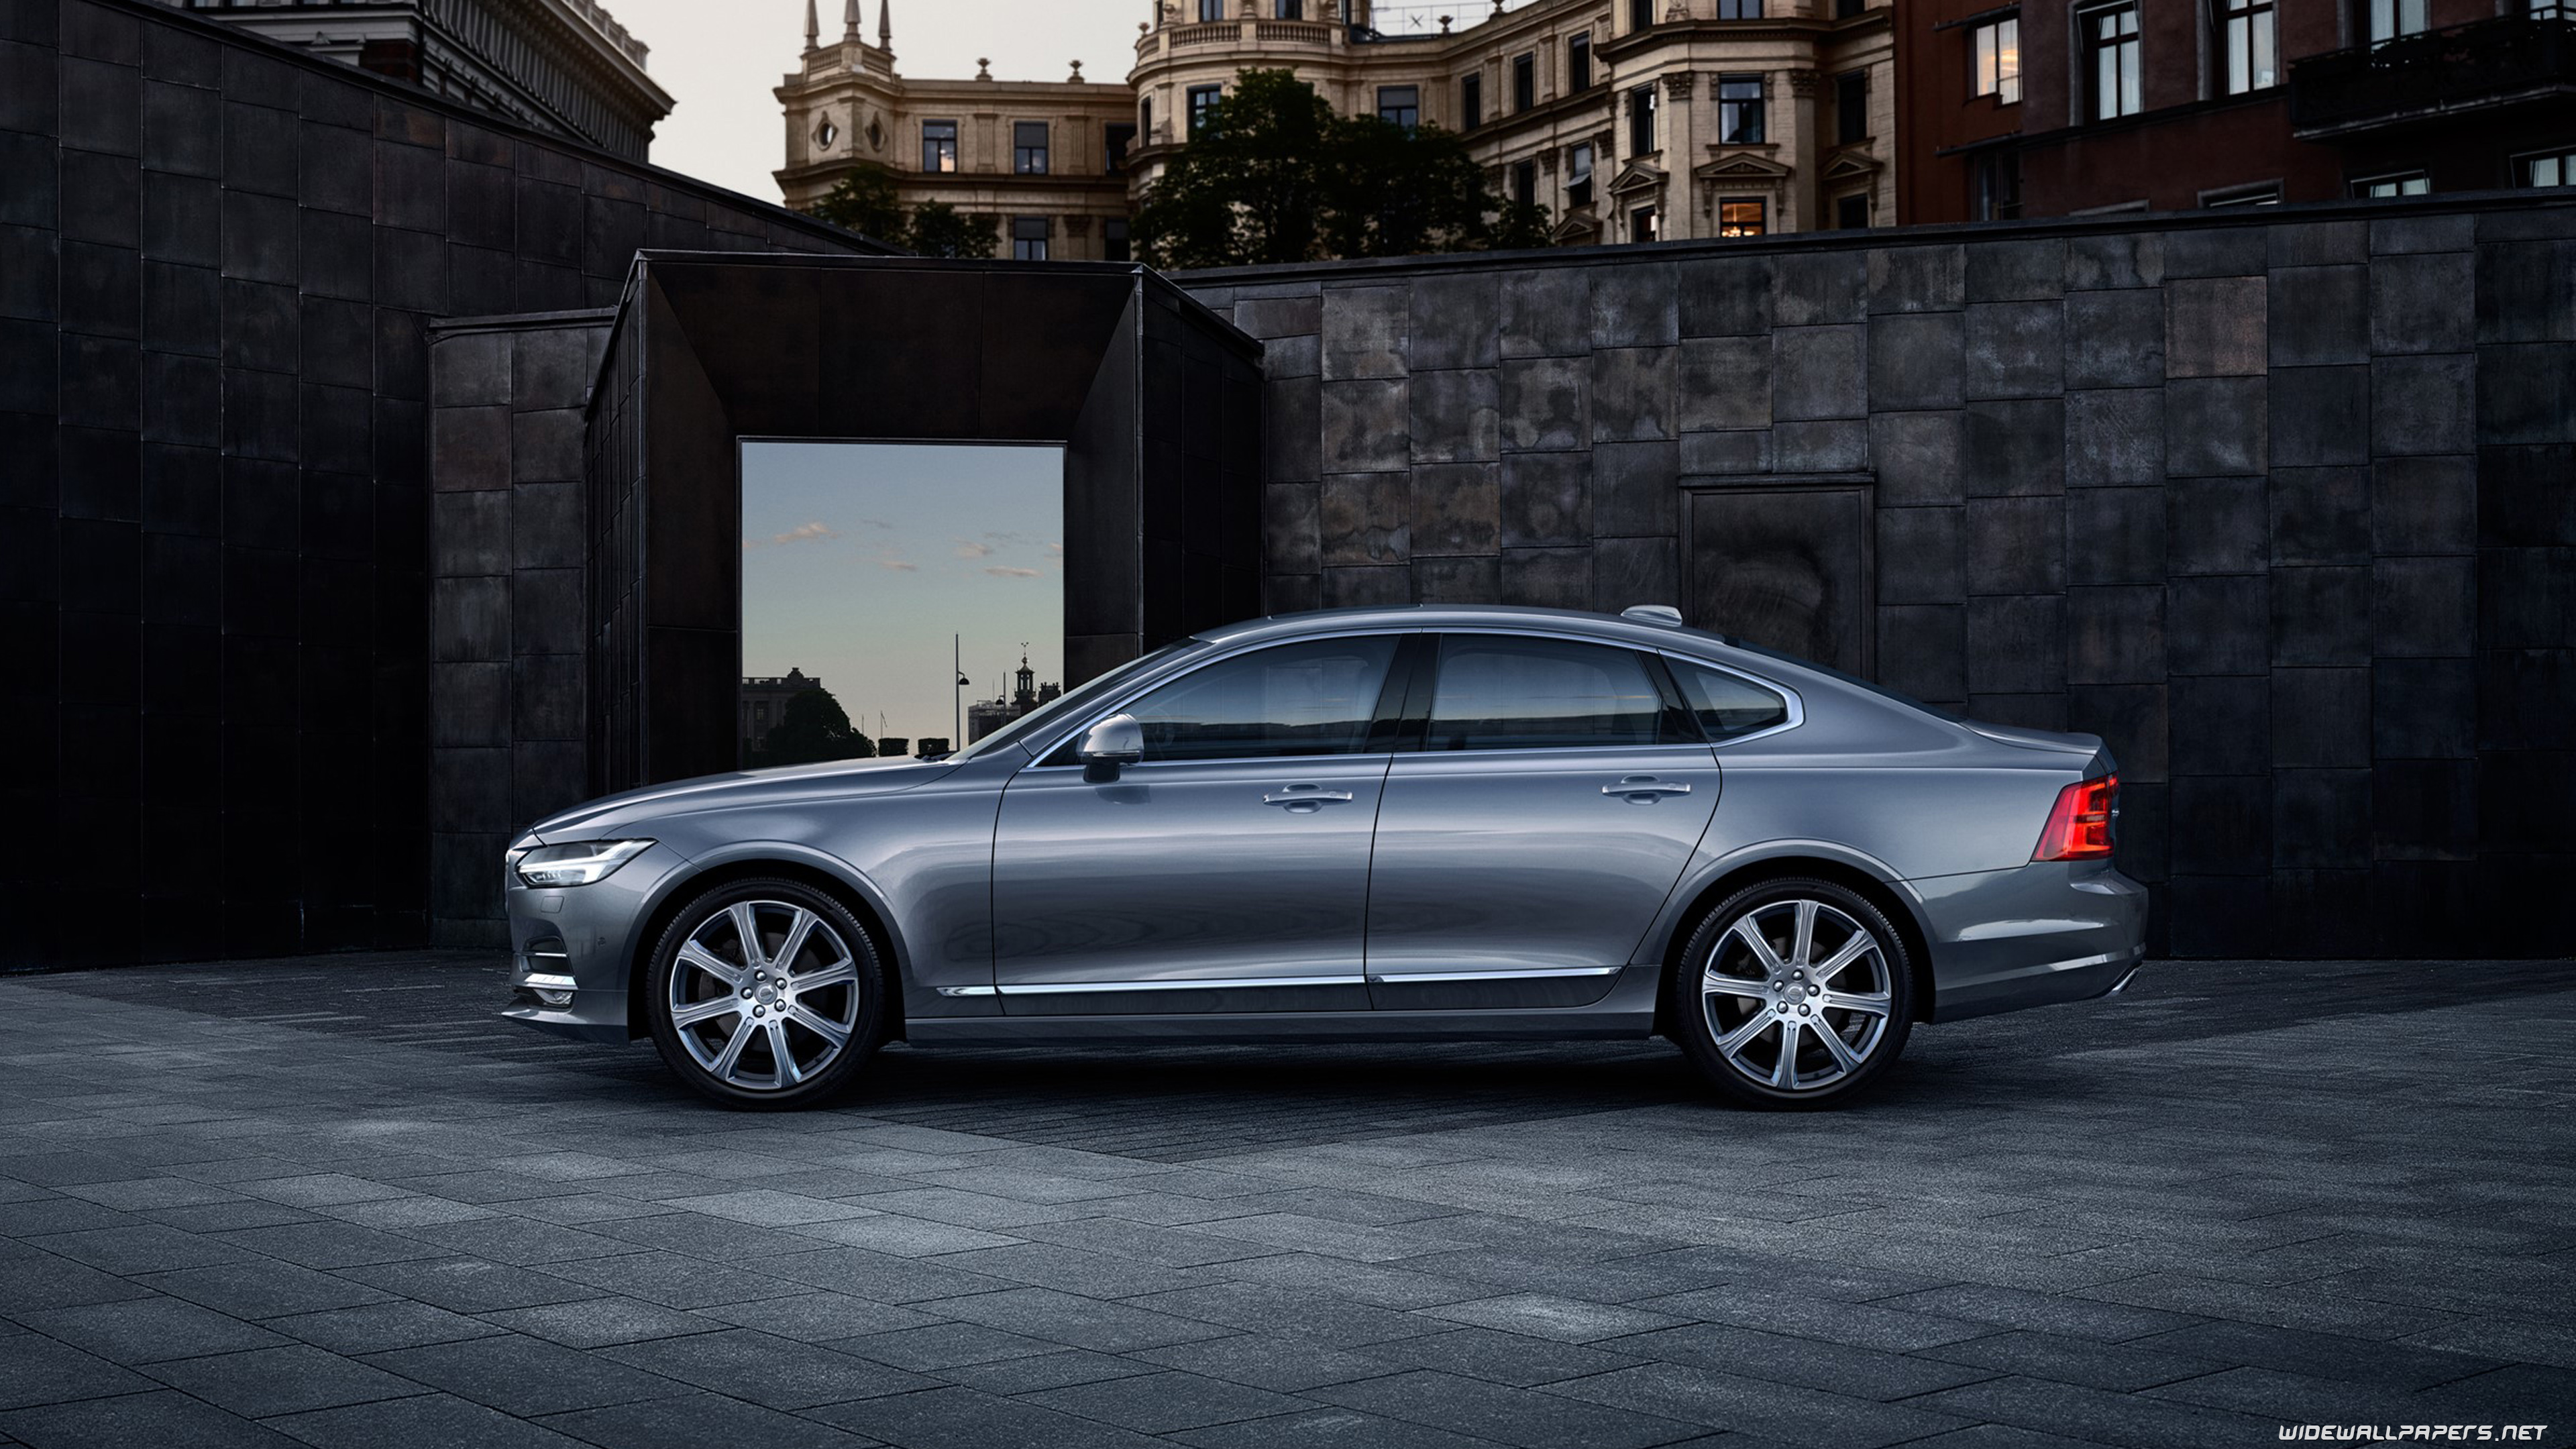 Volvo S90 T8 >> Volvo S90 cars desktop wallpapers 4K Ultra HD